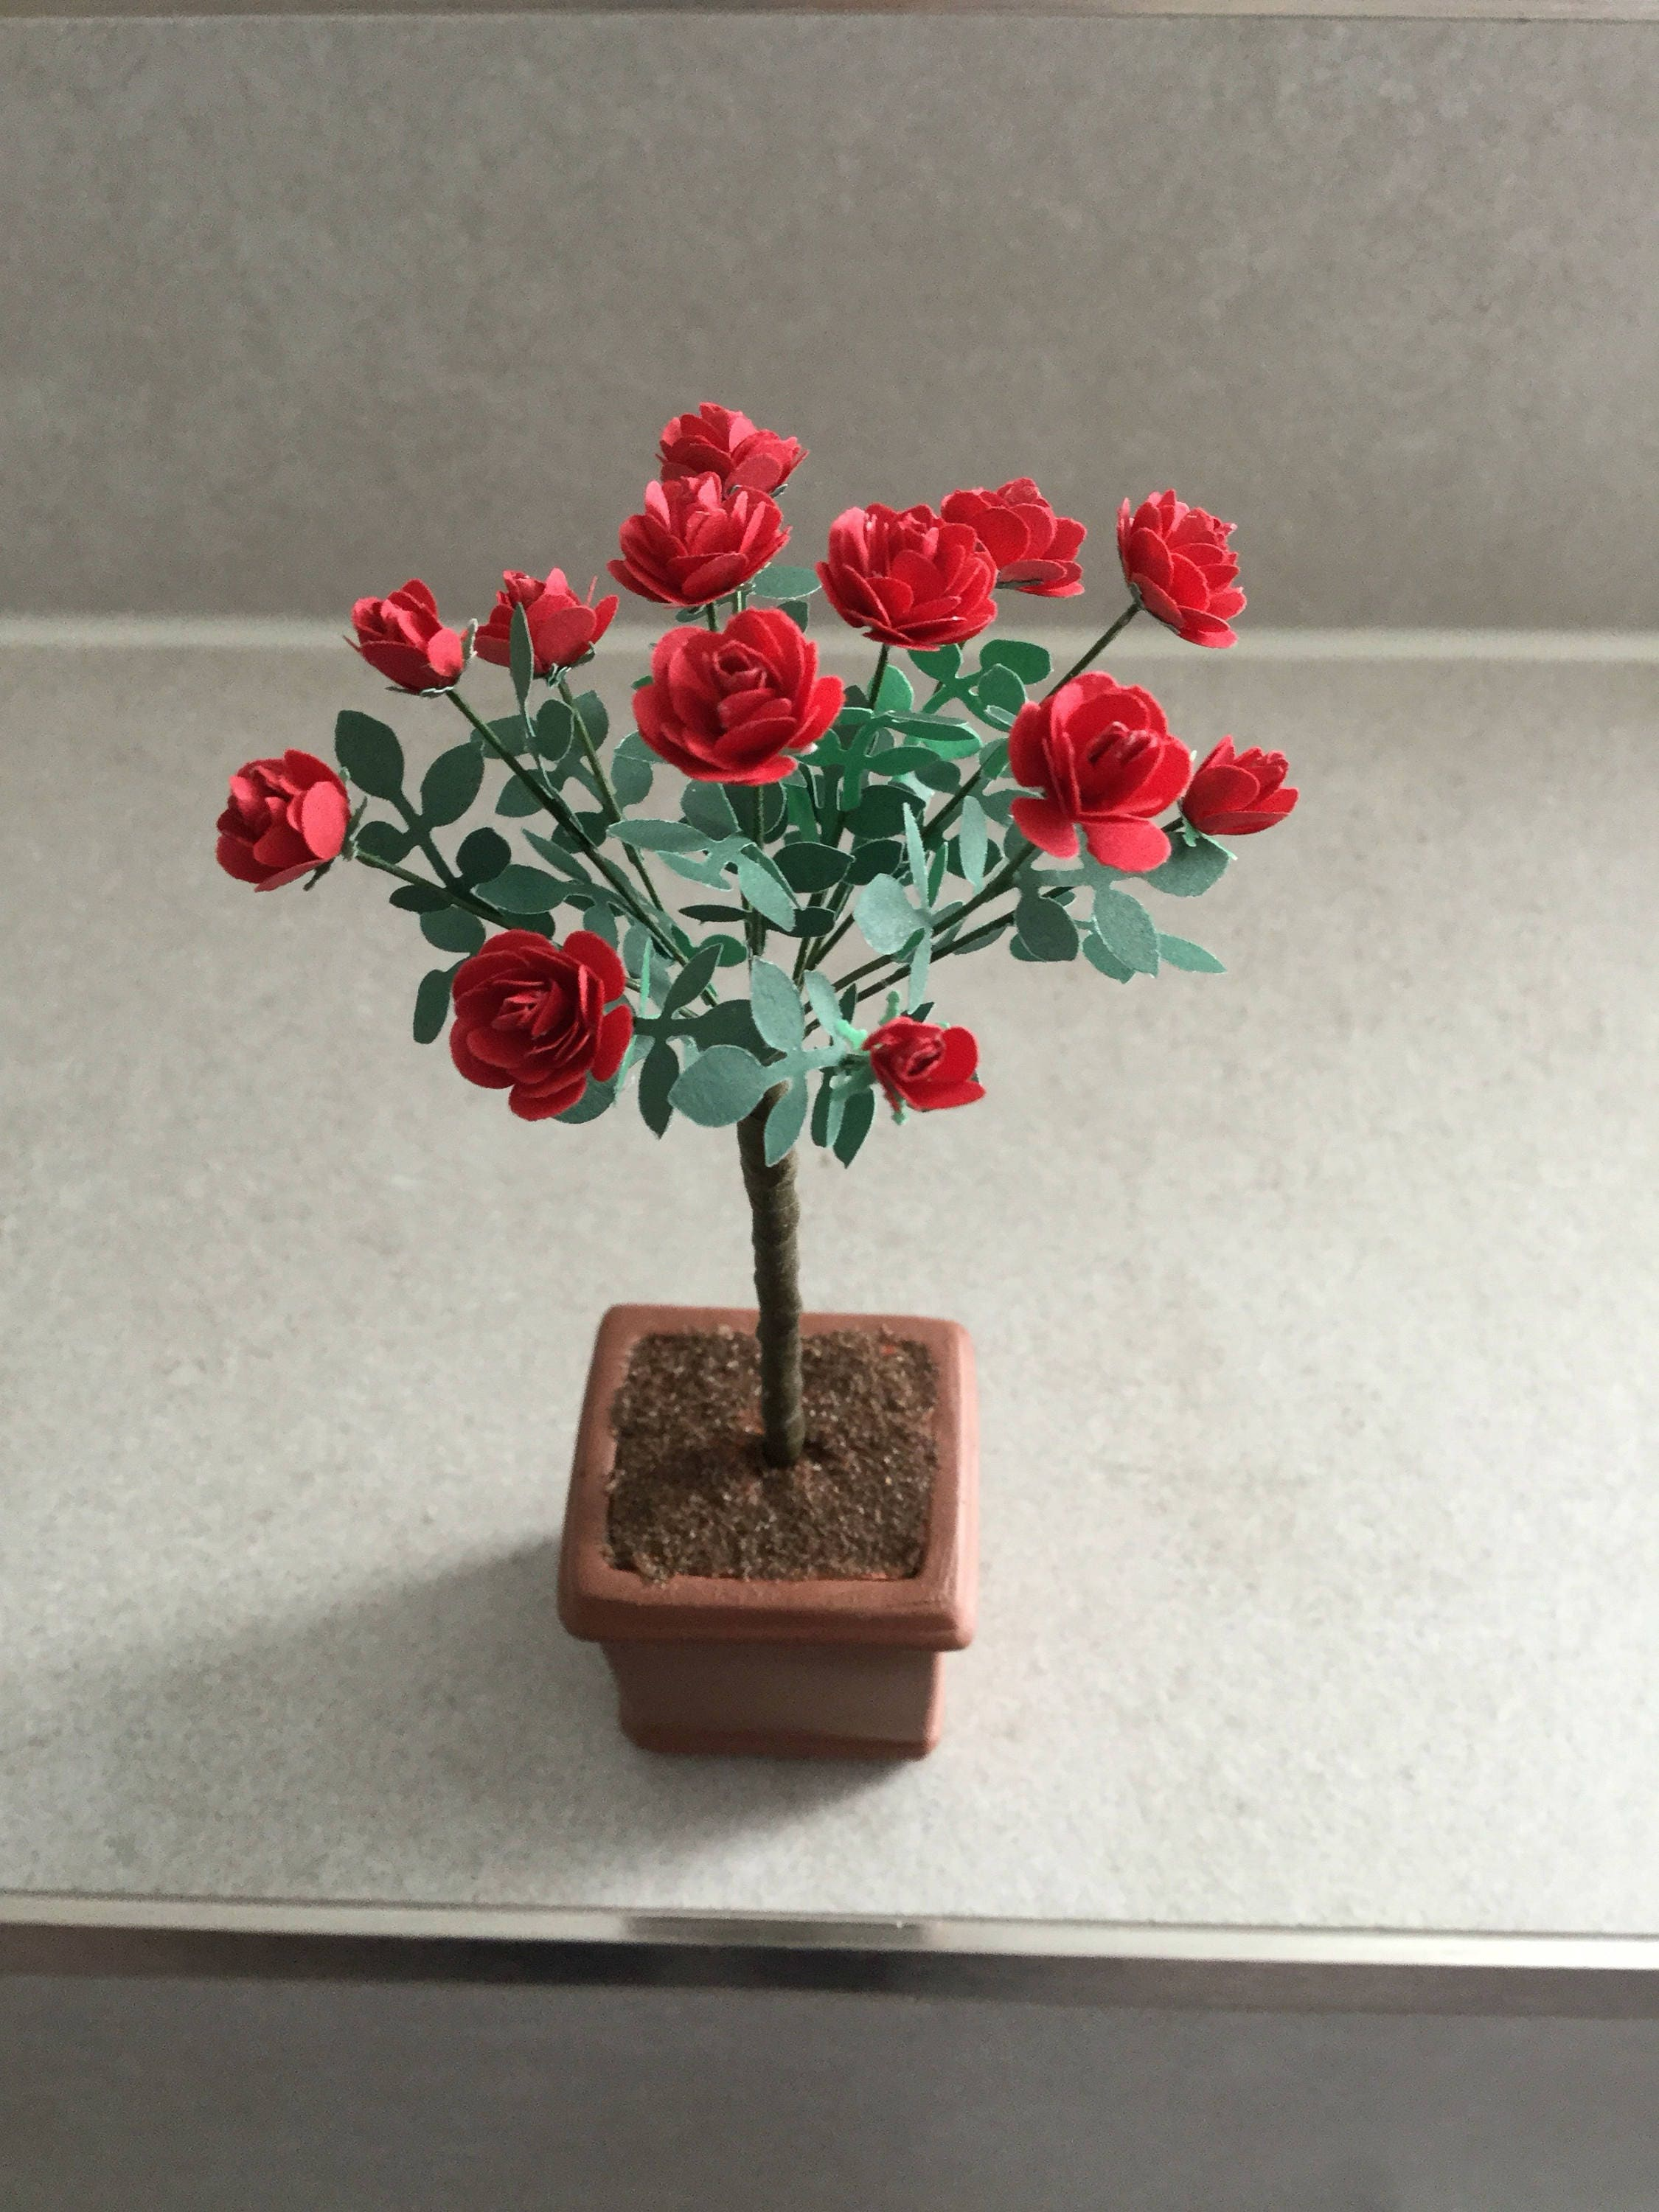 Dolls House Roses 112th scale Standard Red Rose Miniature Rose Tree 112 Dolls House Decor